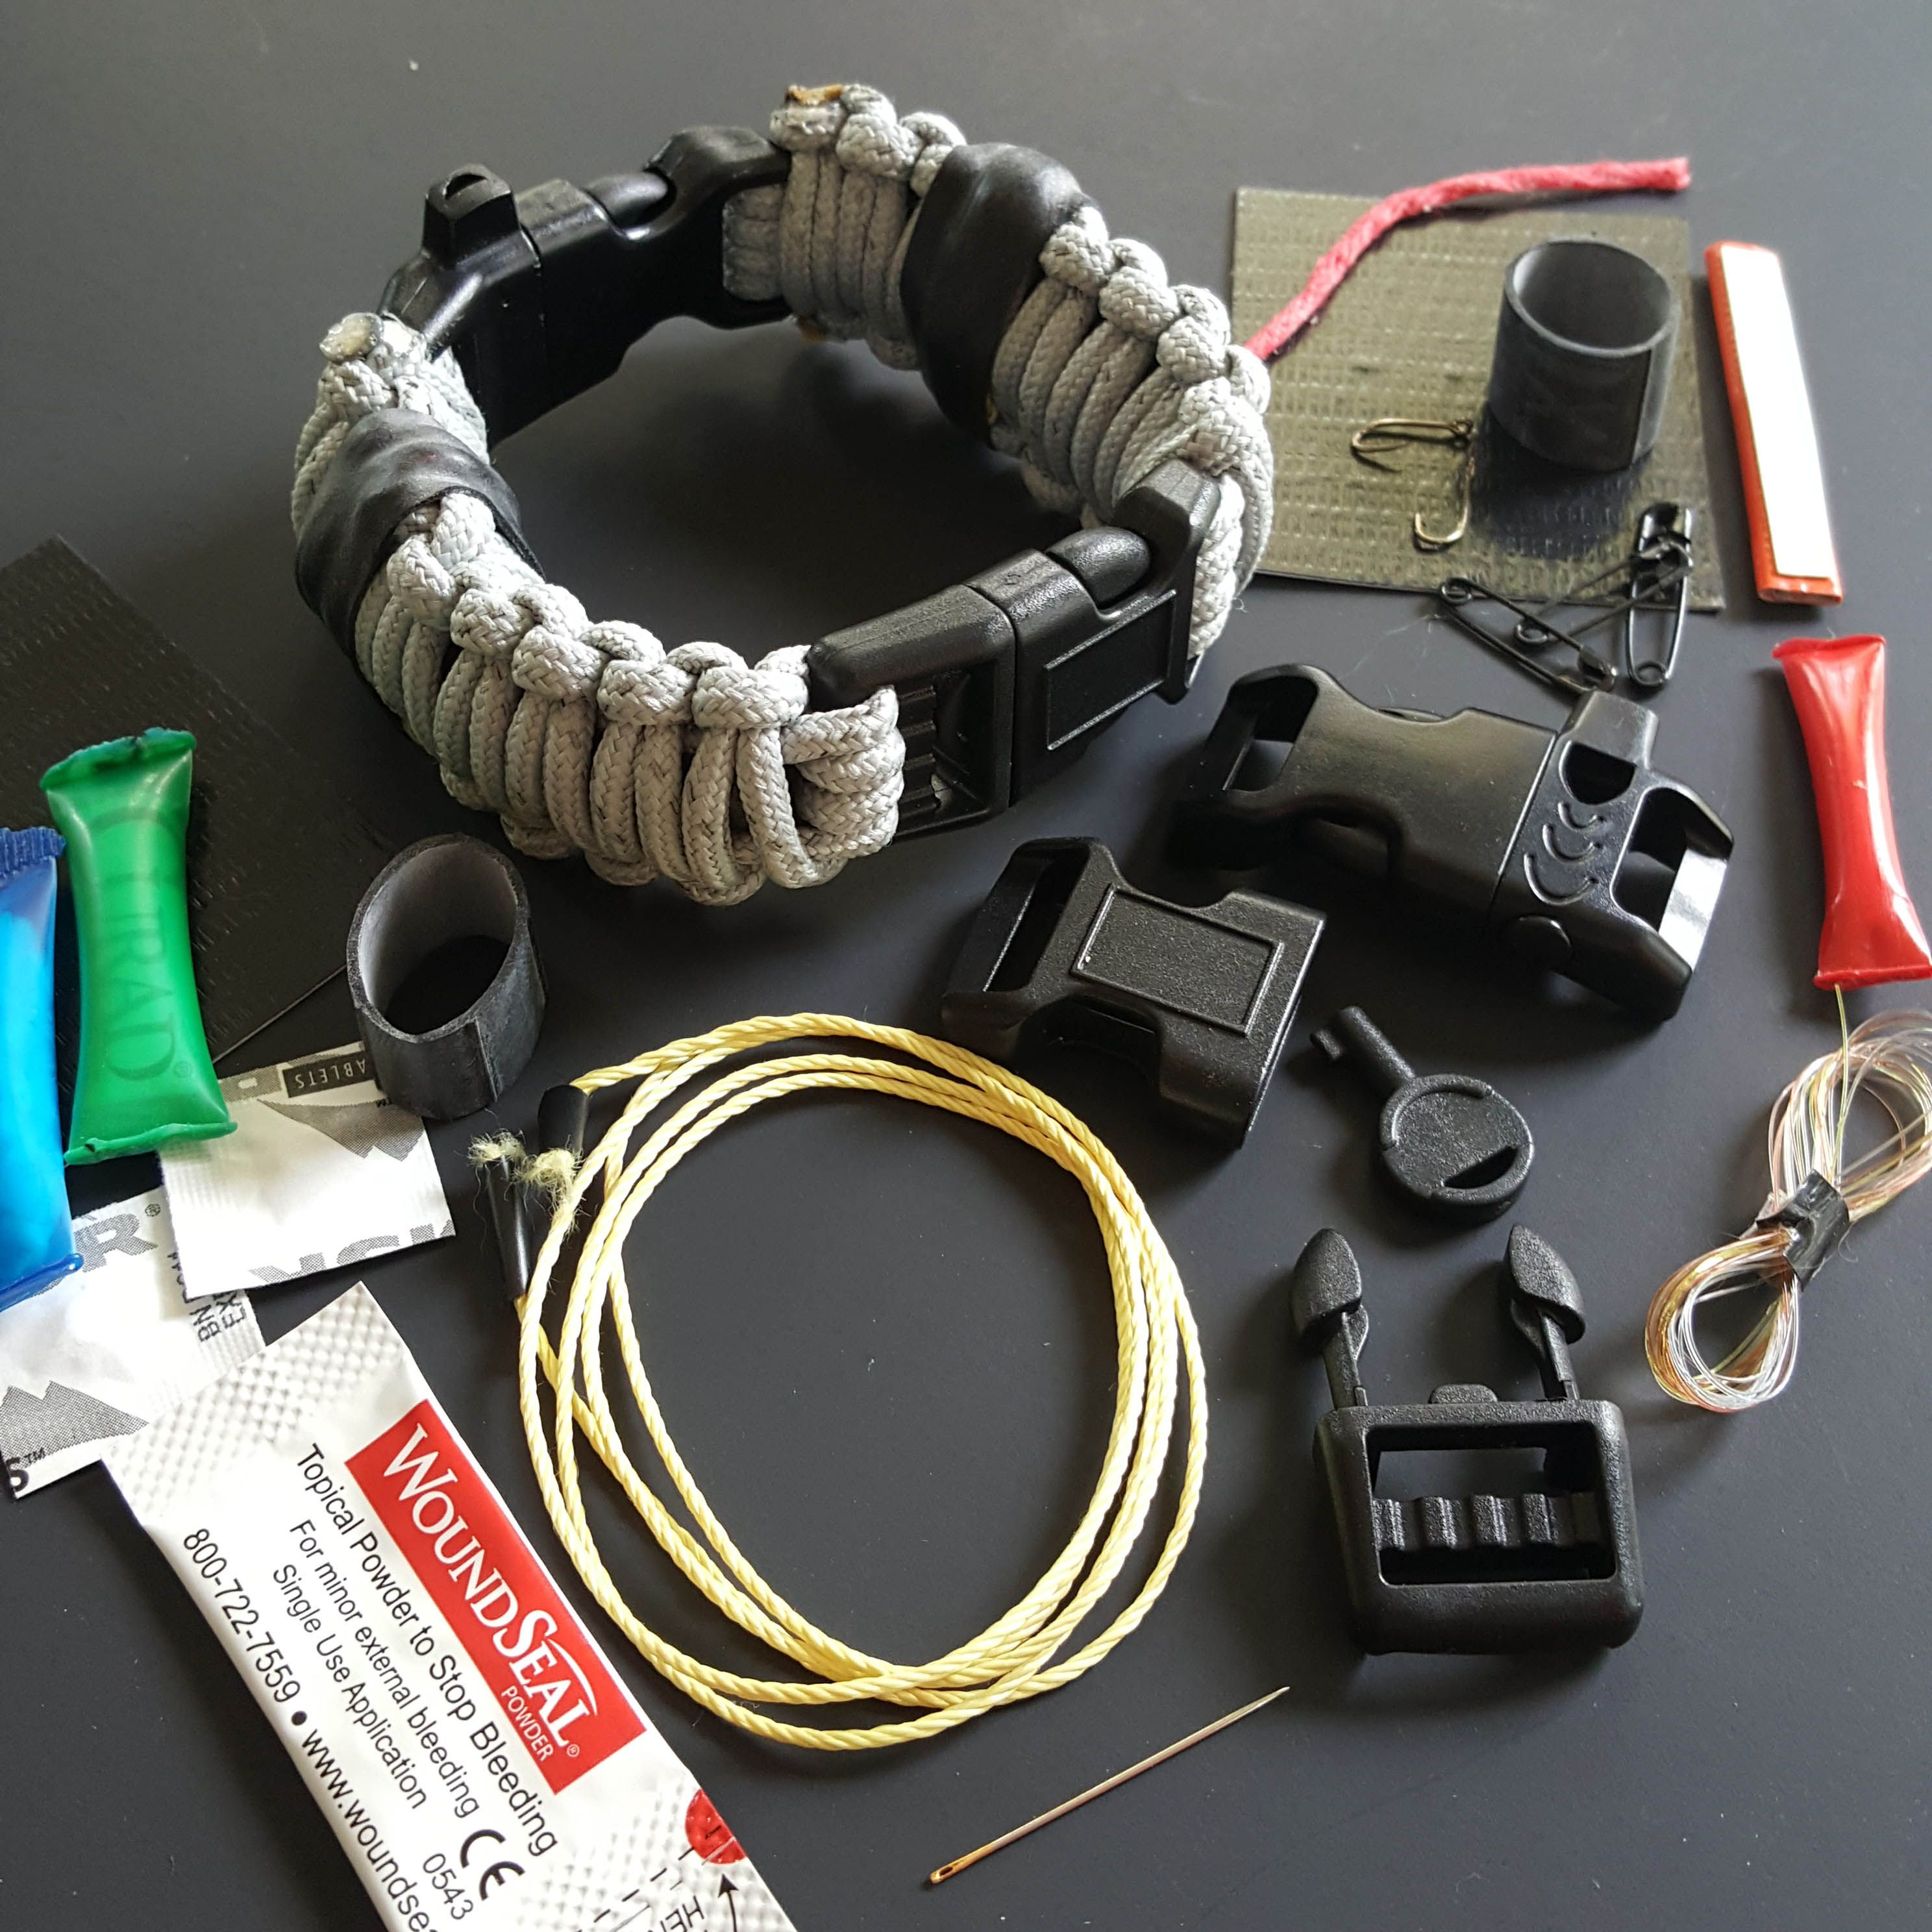 Use Code Equip2survive To Get A Free Kevlar Saw The Best